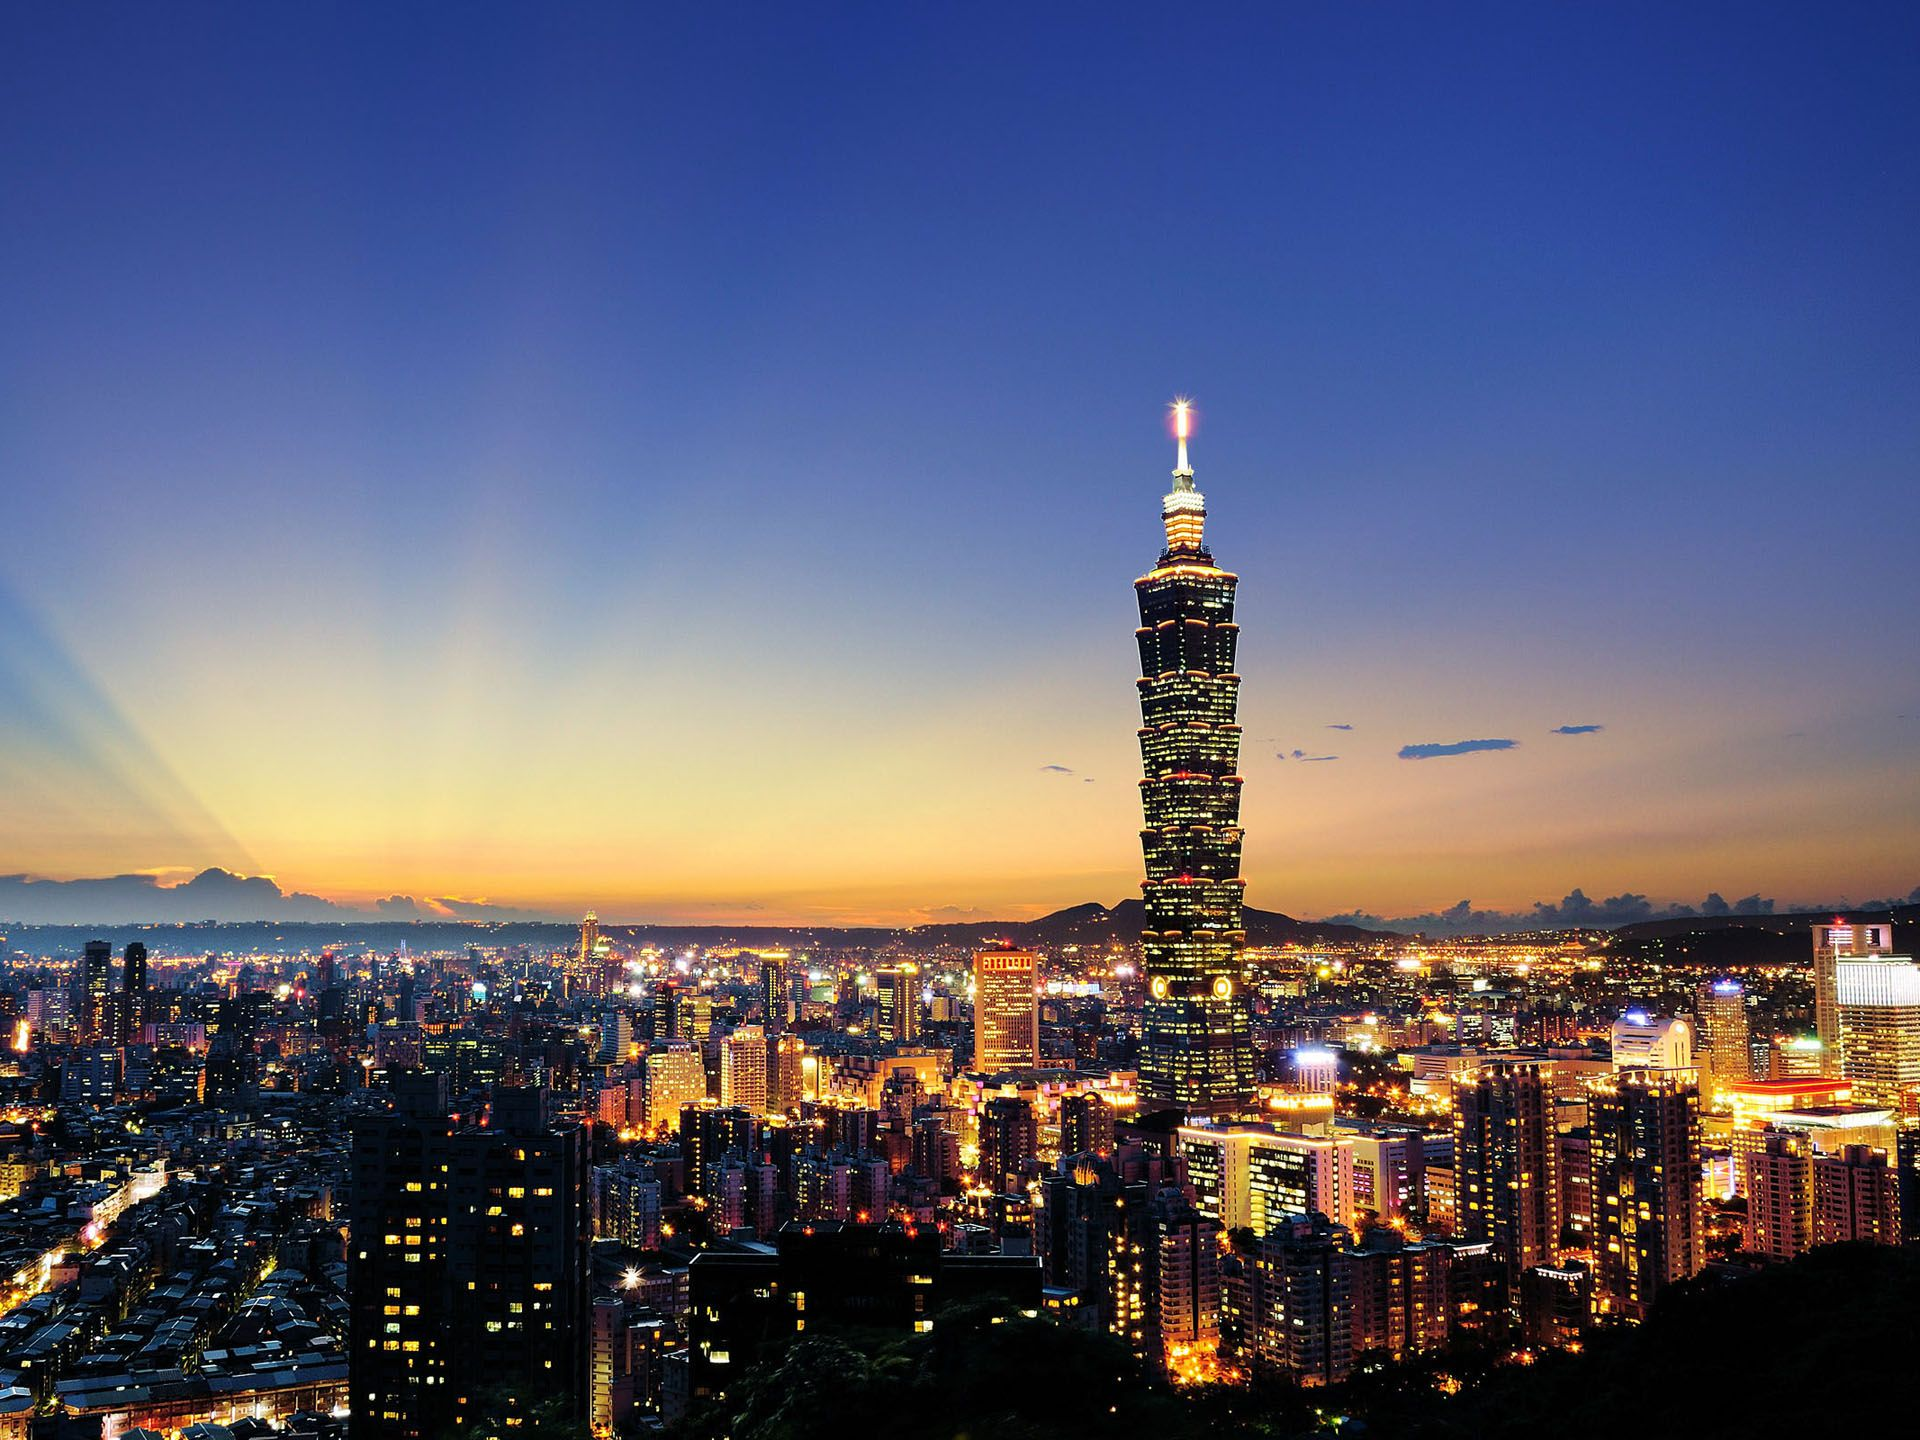 taiwan economy The economic situation is important not just because taiwan's weak economy makes it highly vulnerable to pressure from its major trading partner.